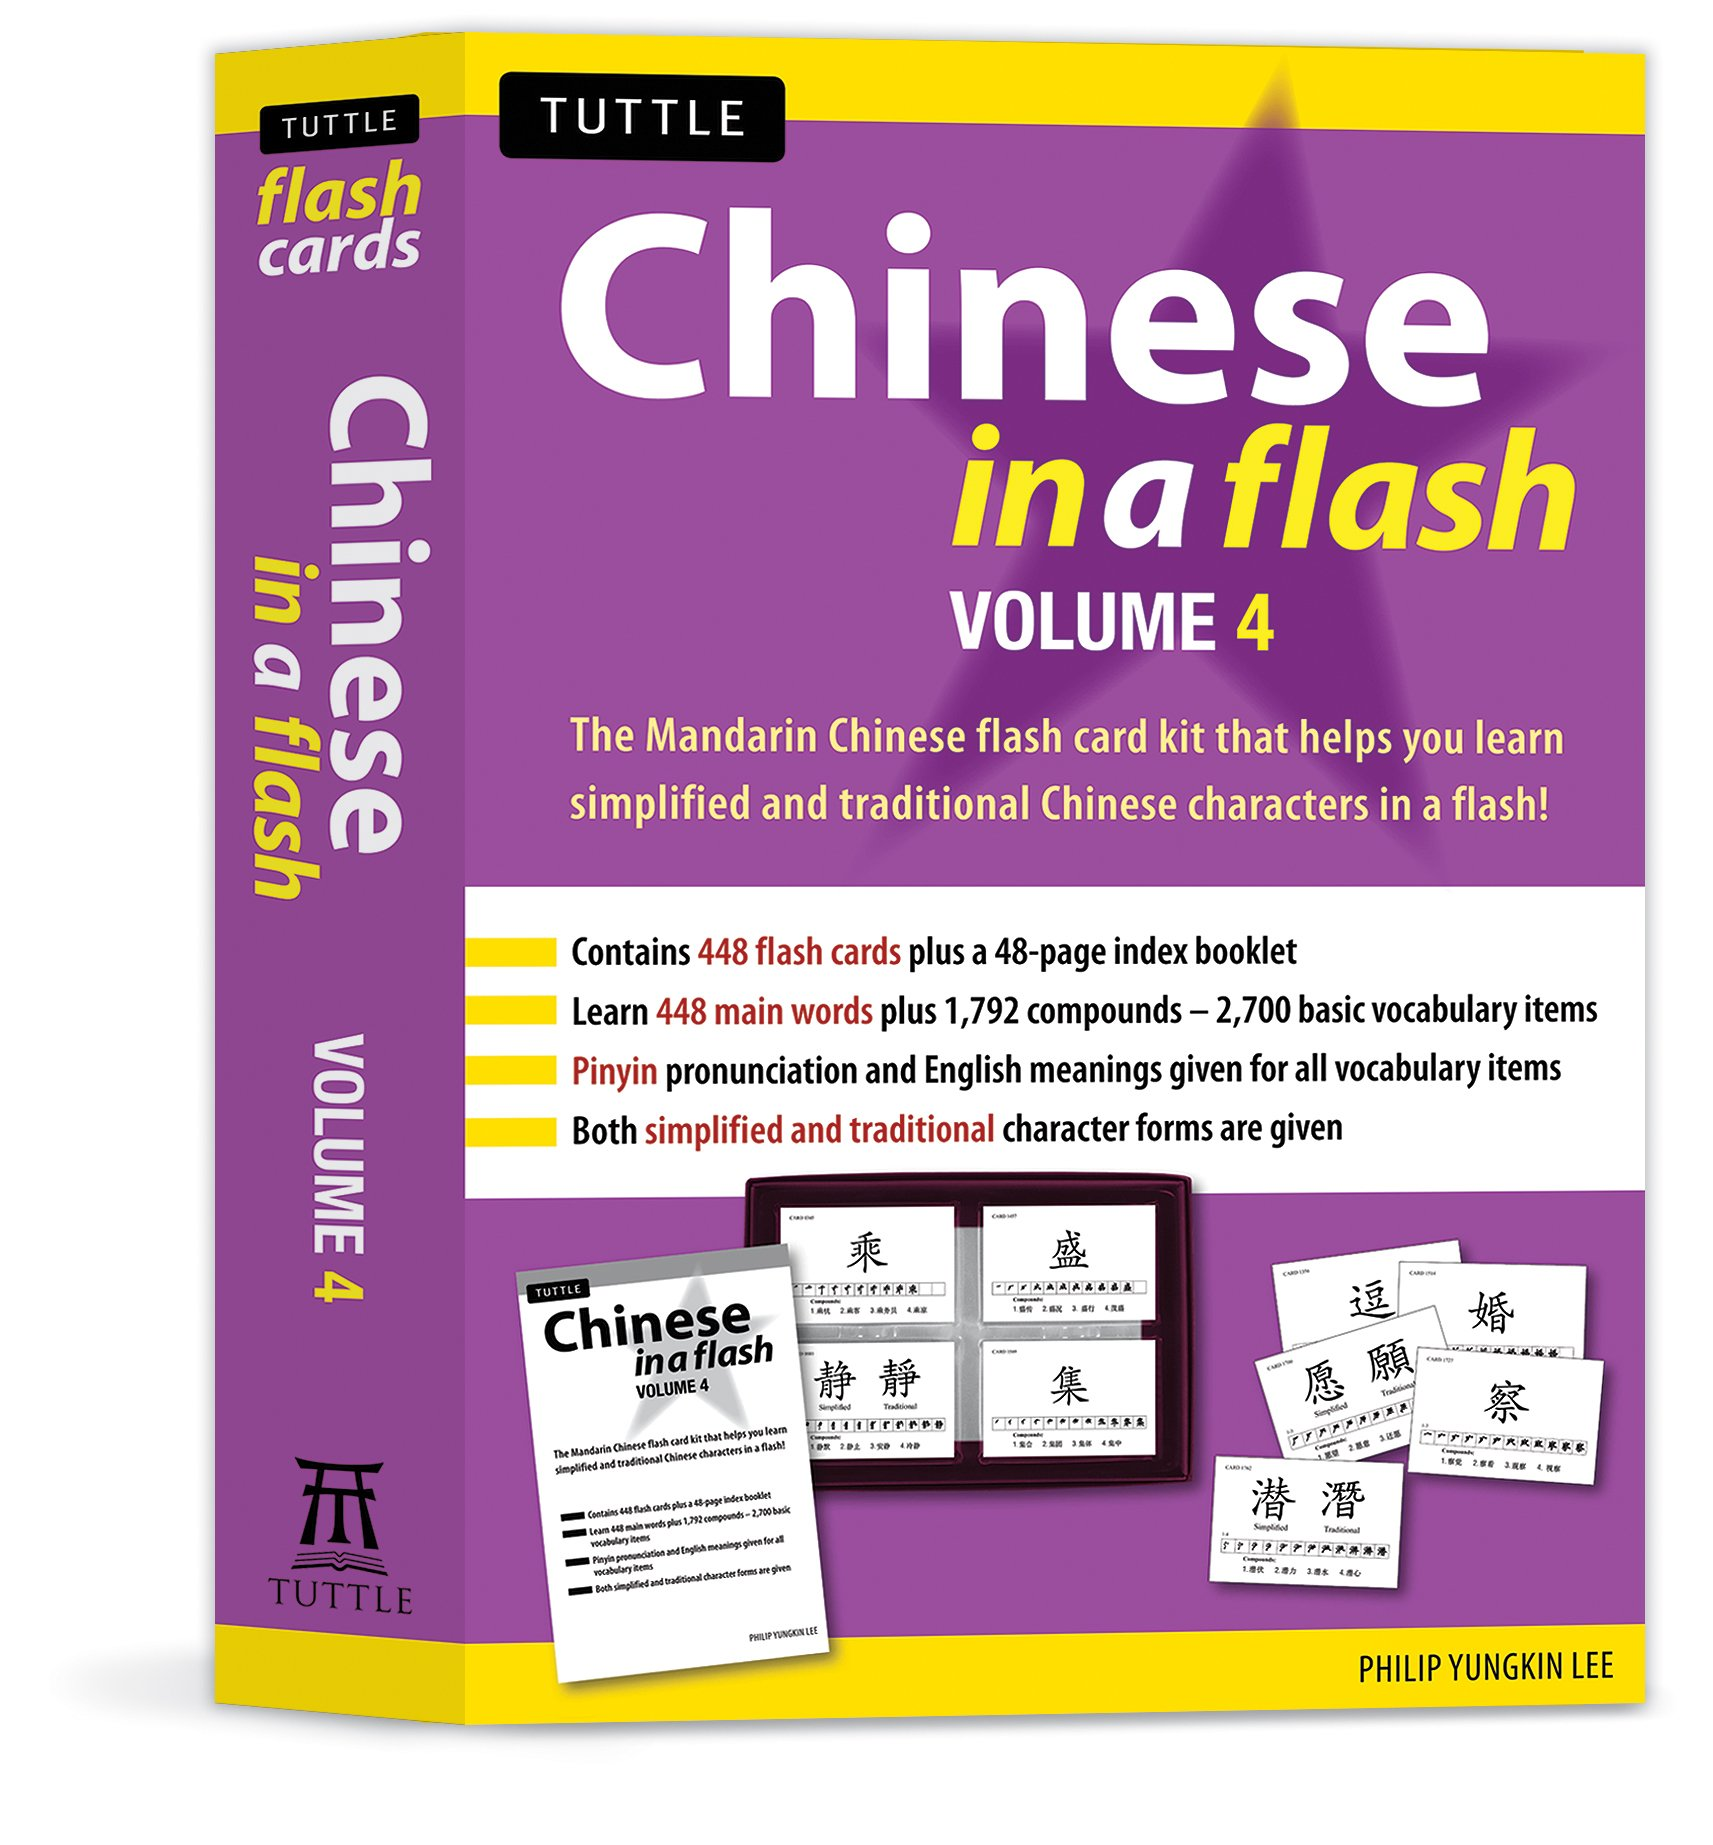 Worksheet Is 700 Flashcards chinese in a flash kit volume 4 tuttle cards philip yungkin lee 9780804847667 amazon com books